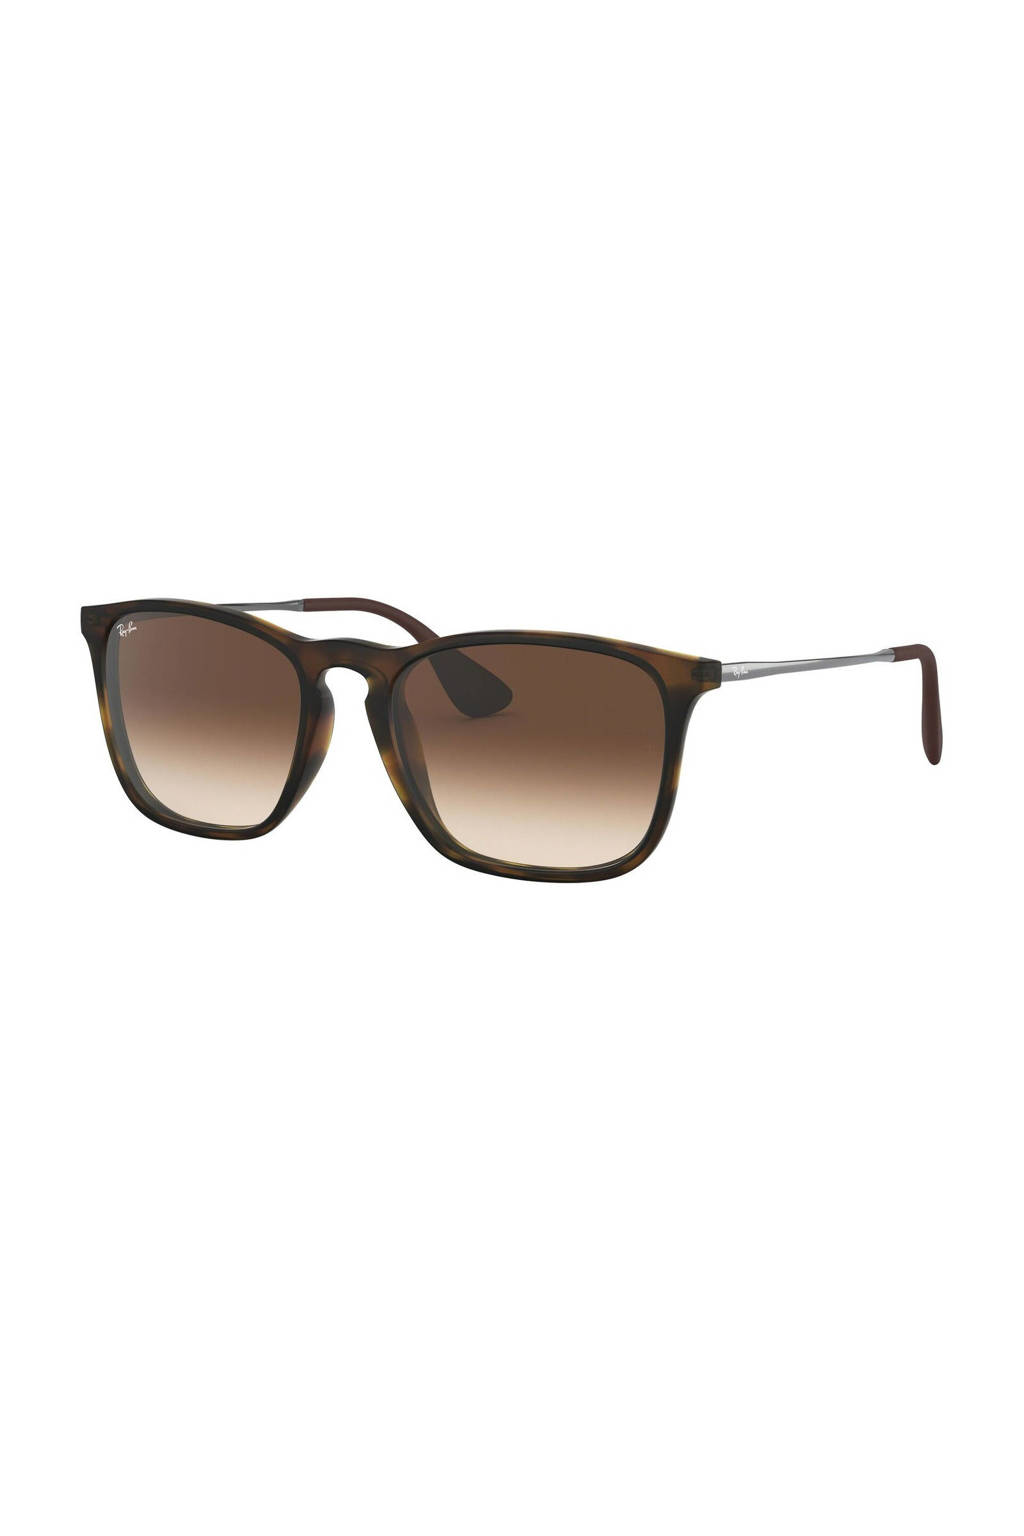 Ray-Ban zonnebril 0RB4187, Bruin